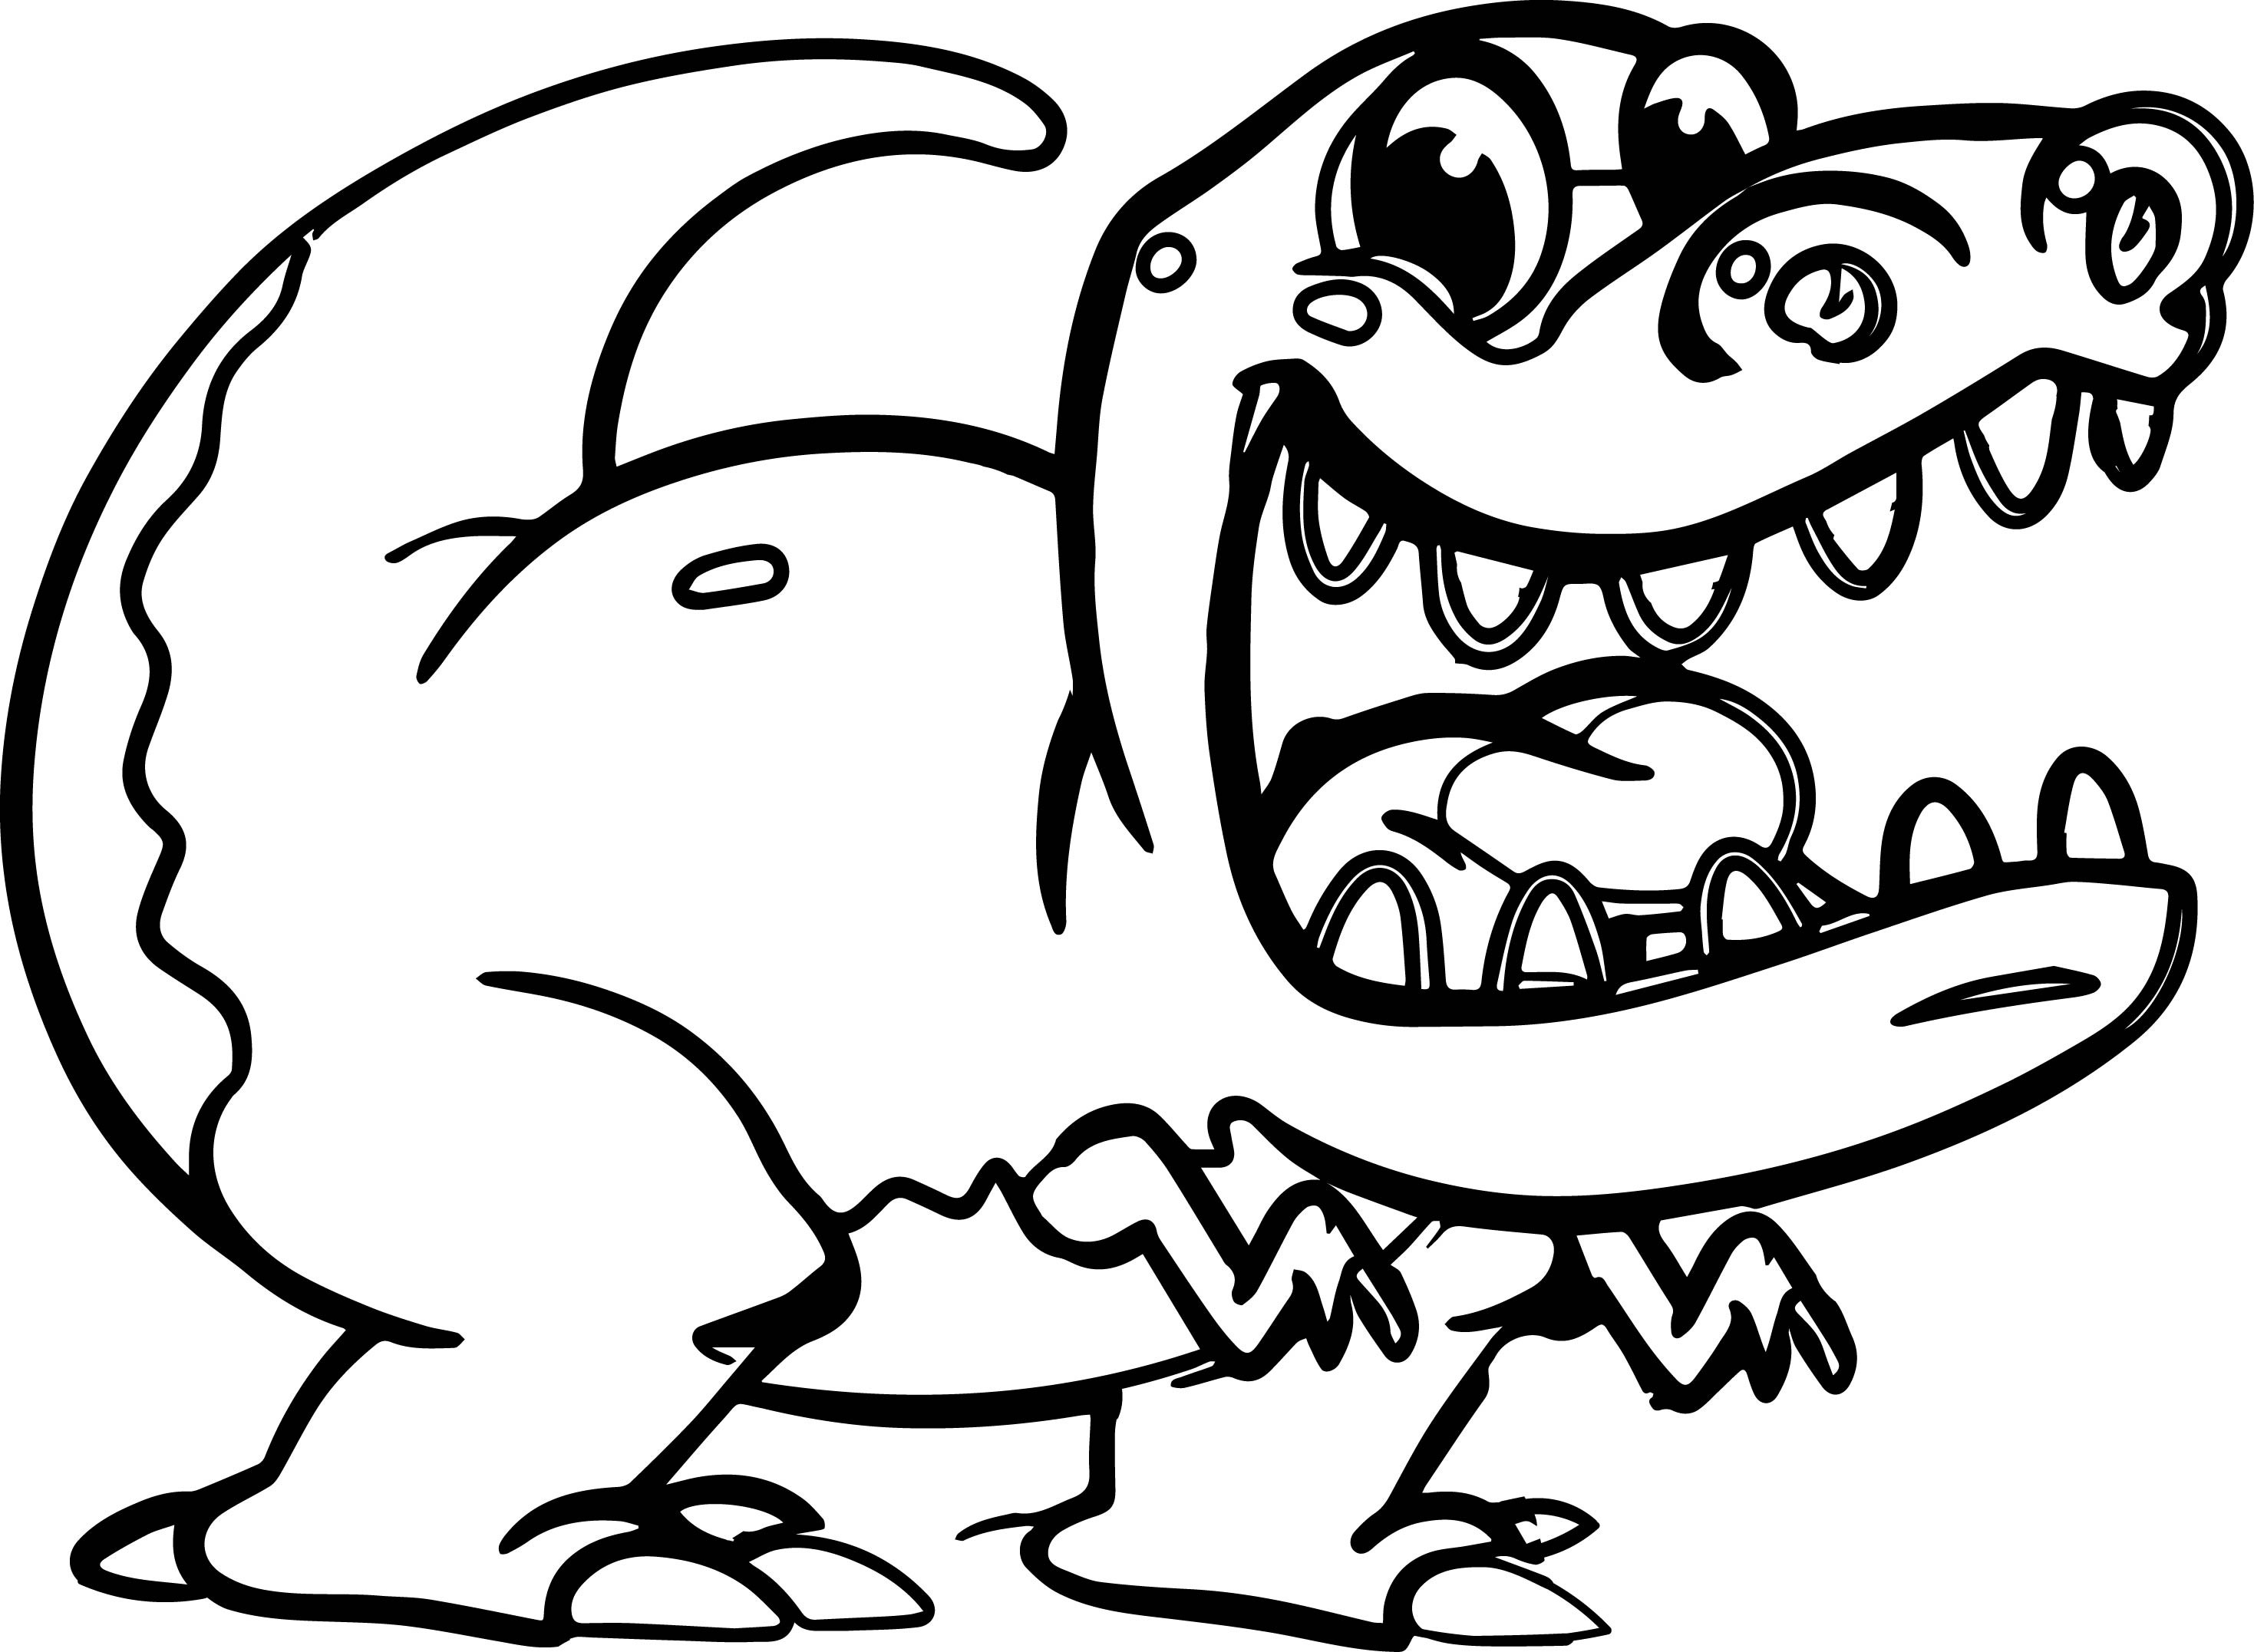 t rex colouring pictures trex coloring pages best coloring pages for kids pictures t colouring rex